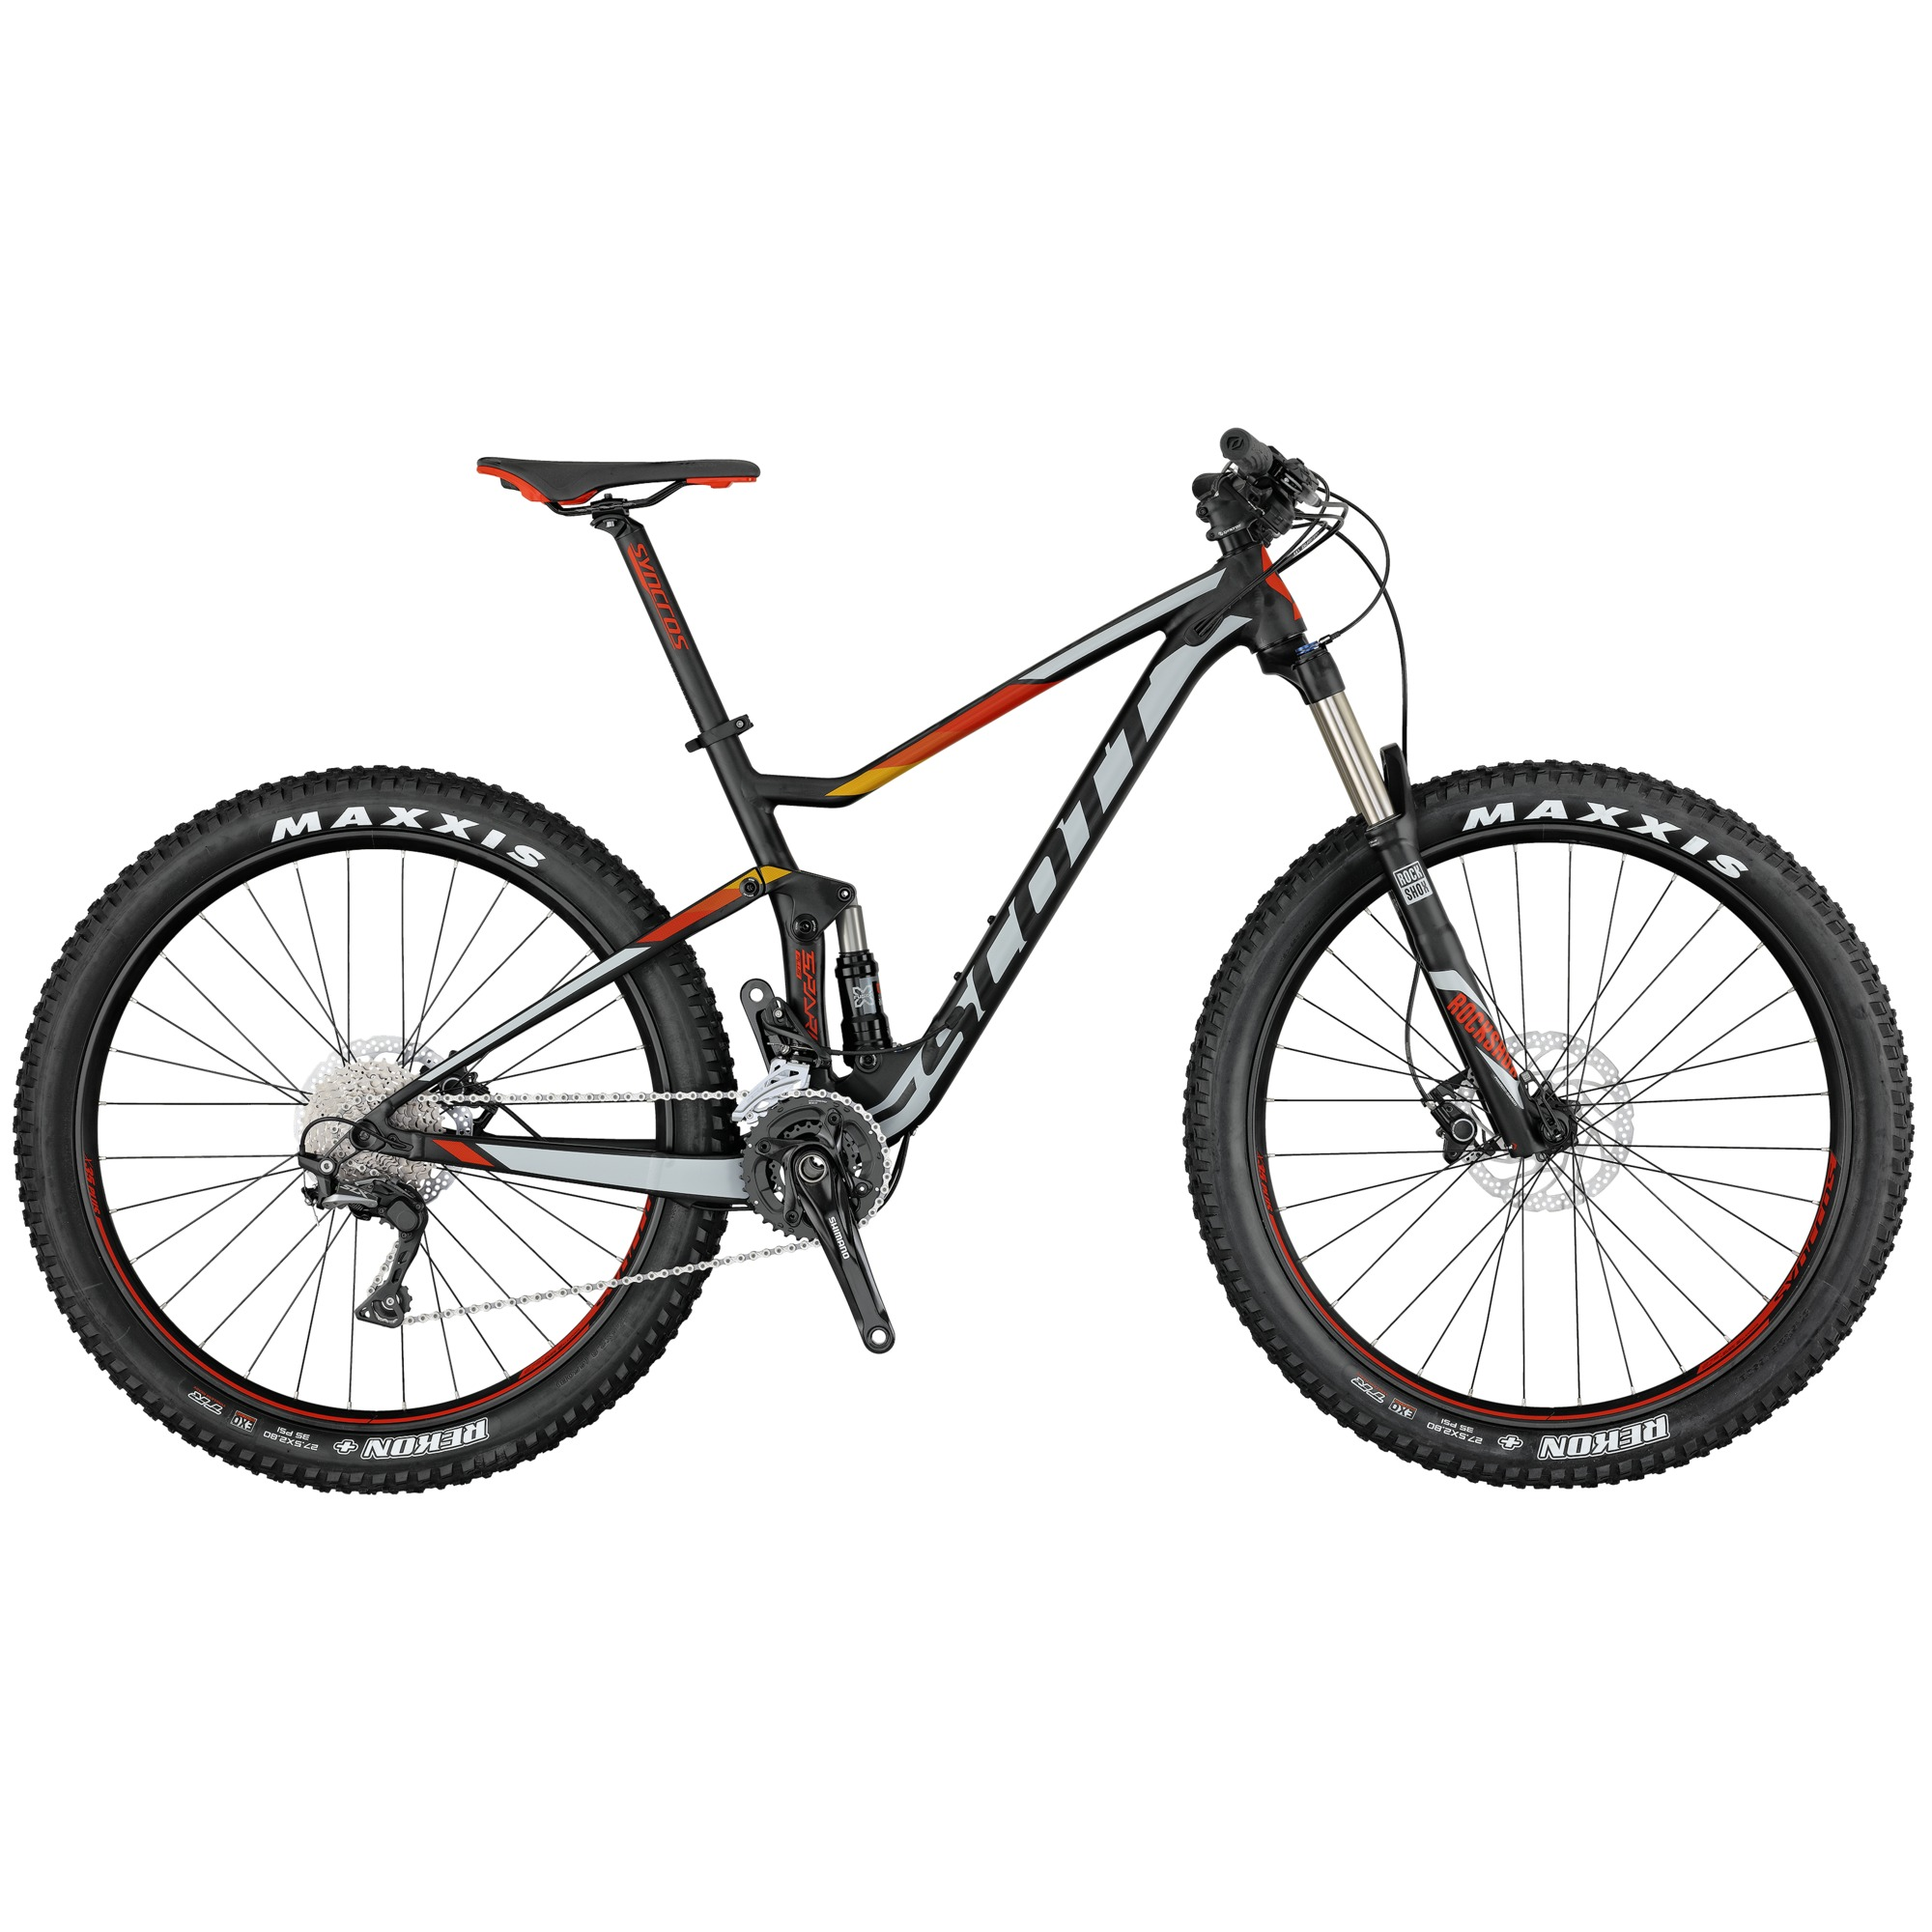 SCOTT Spark 730 Plus Bike